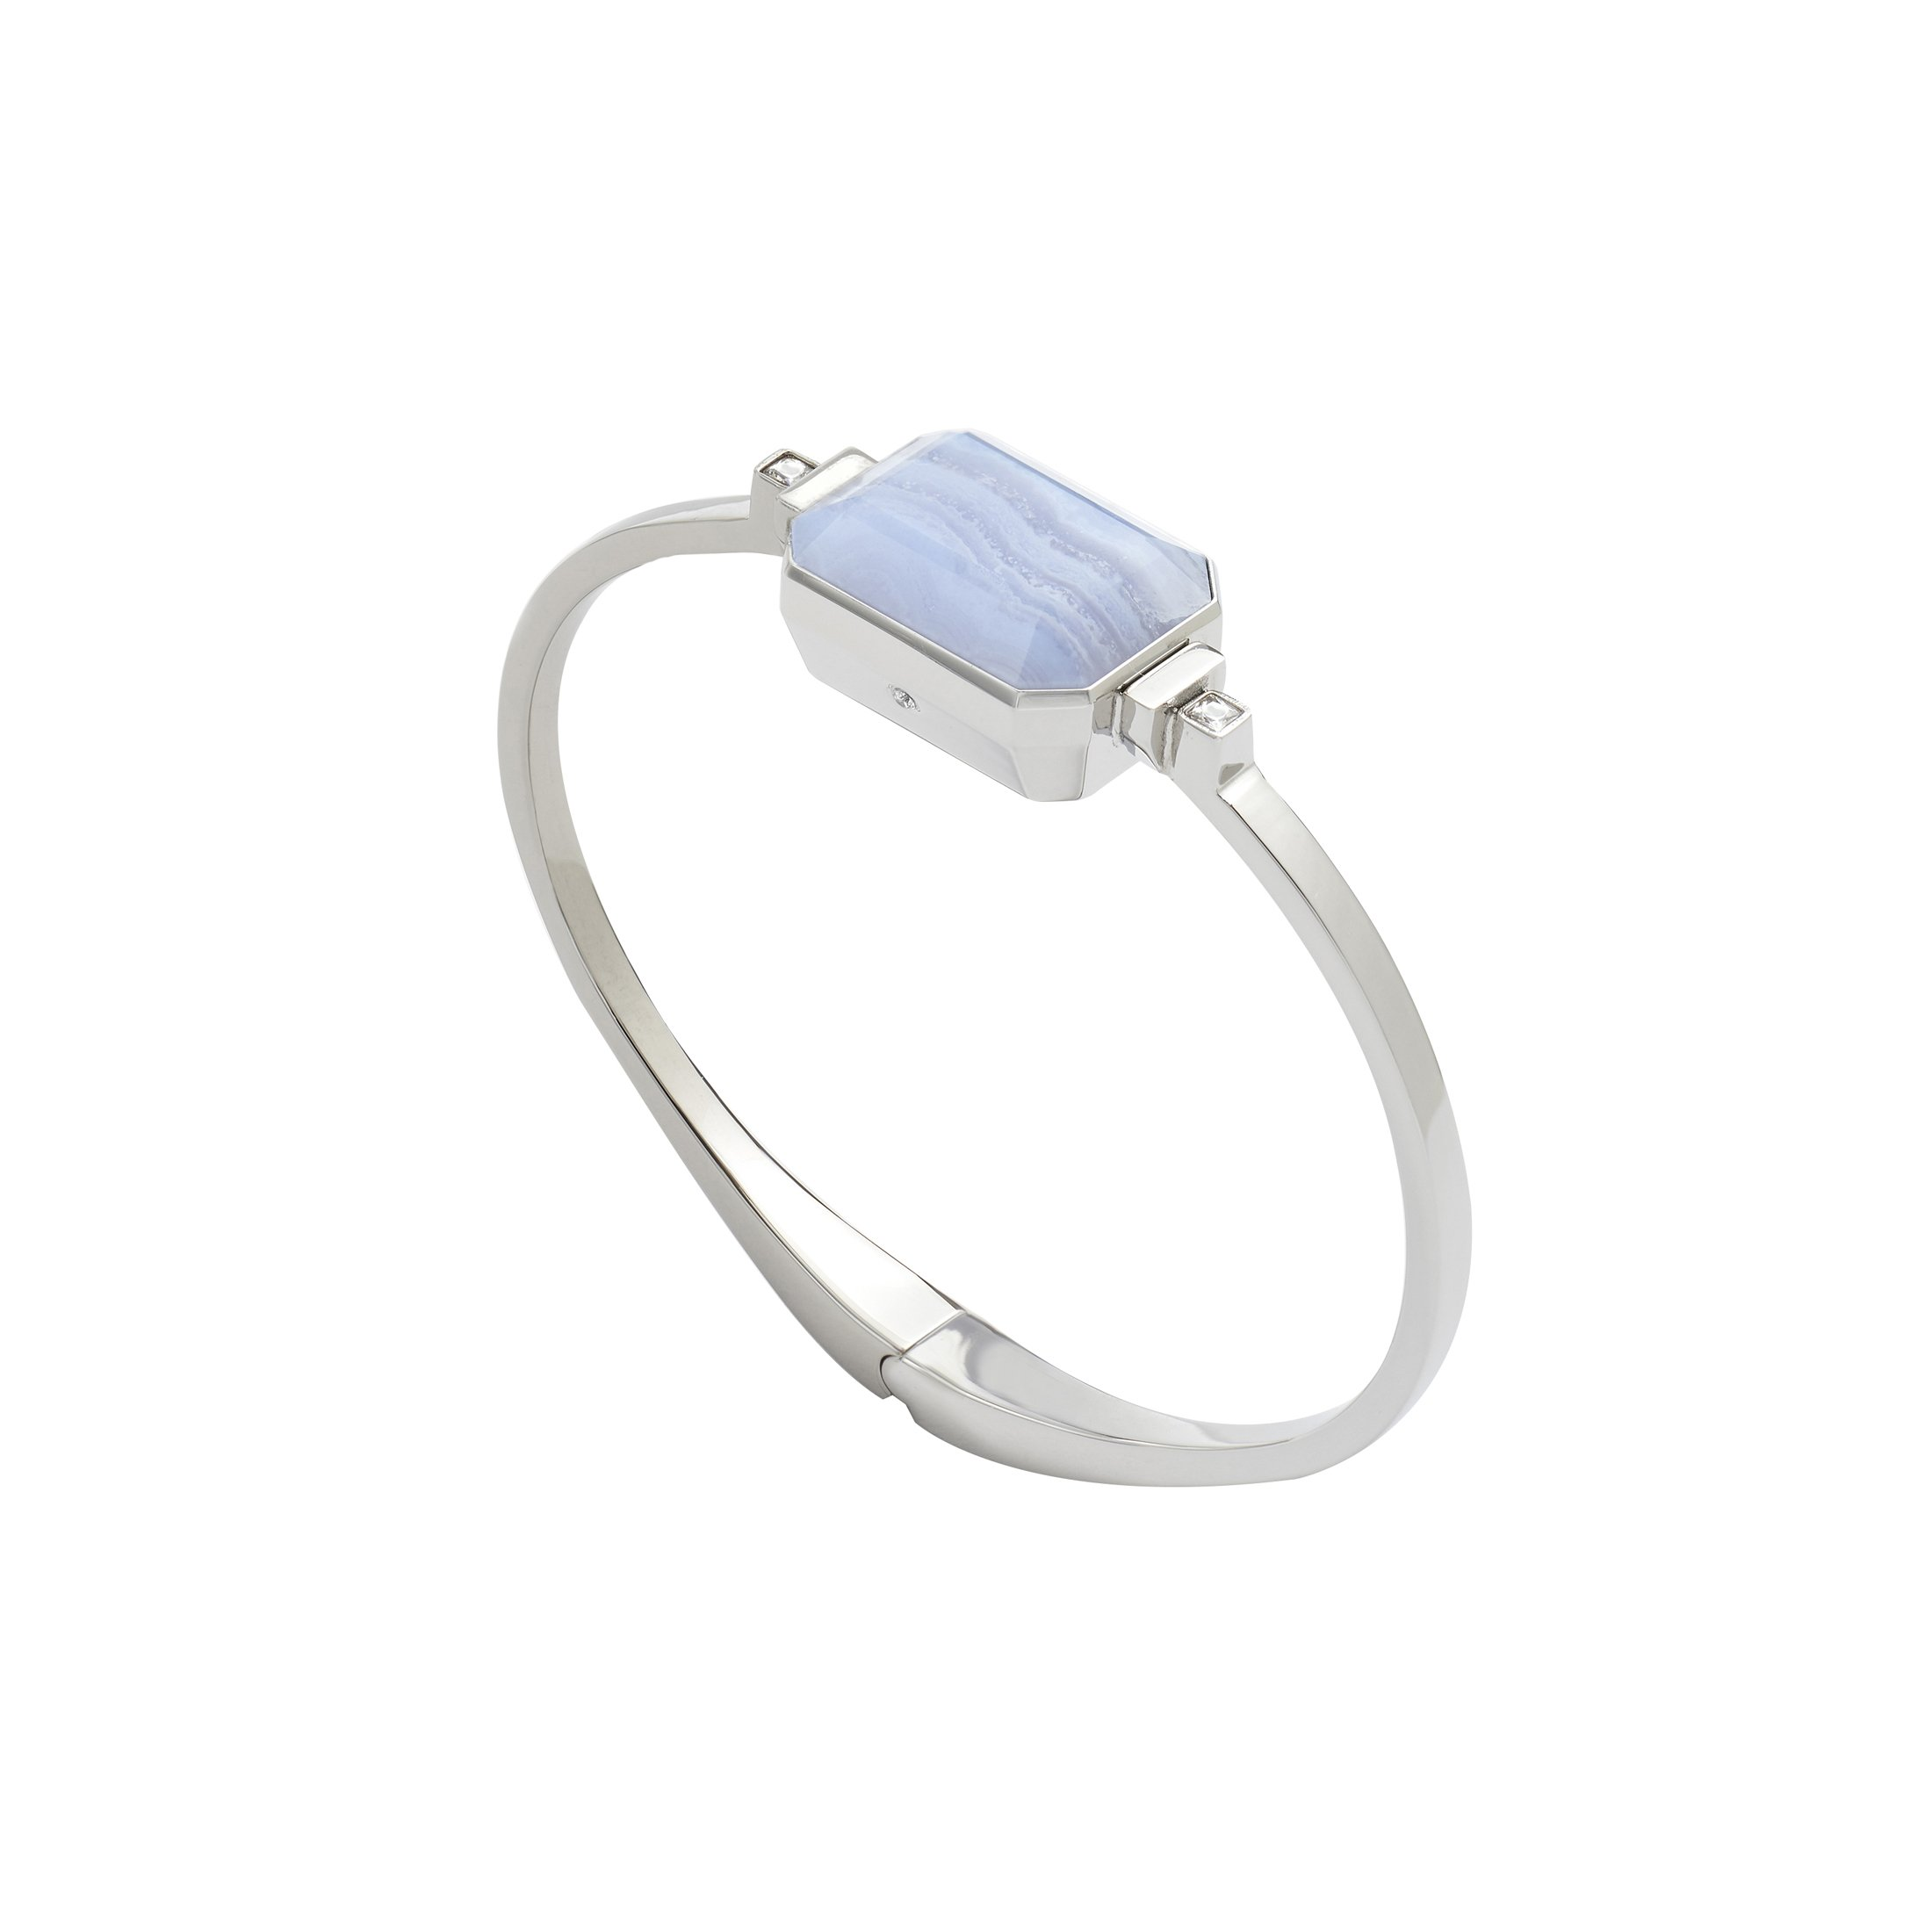 Ringly Luxe - Activity Tracker + Mobile Alerts + Meditation Smart Bracelet by RINGLY (Image #3)